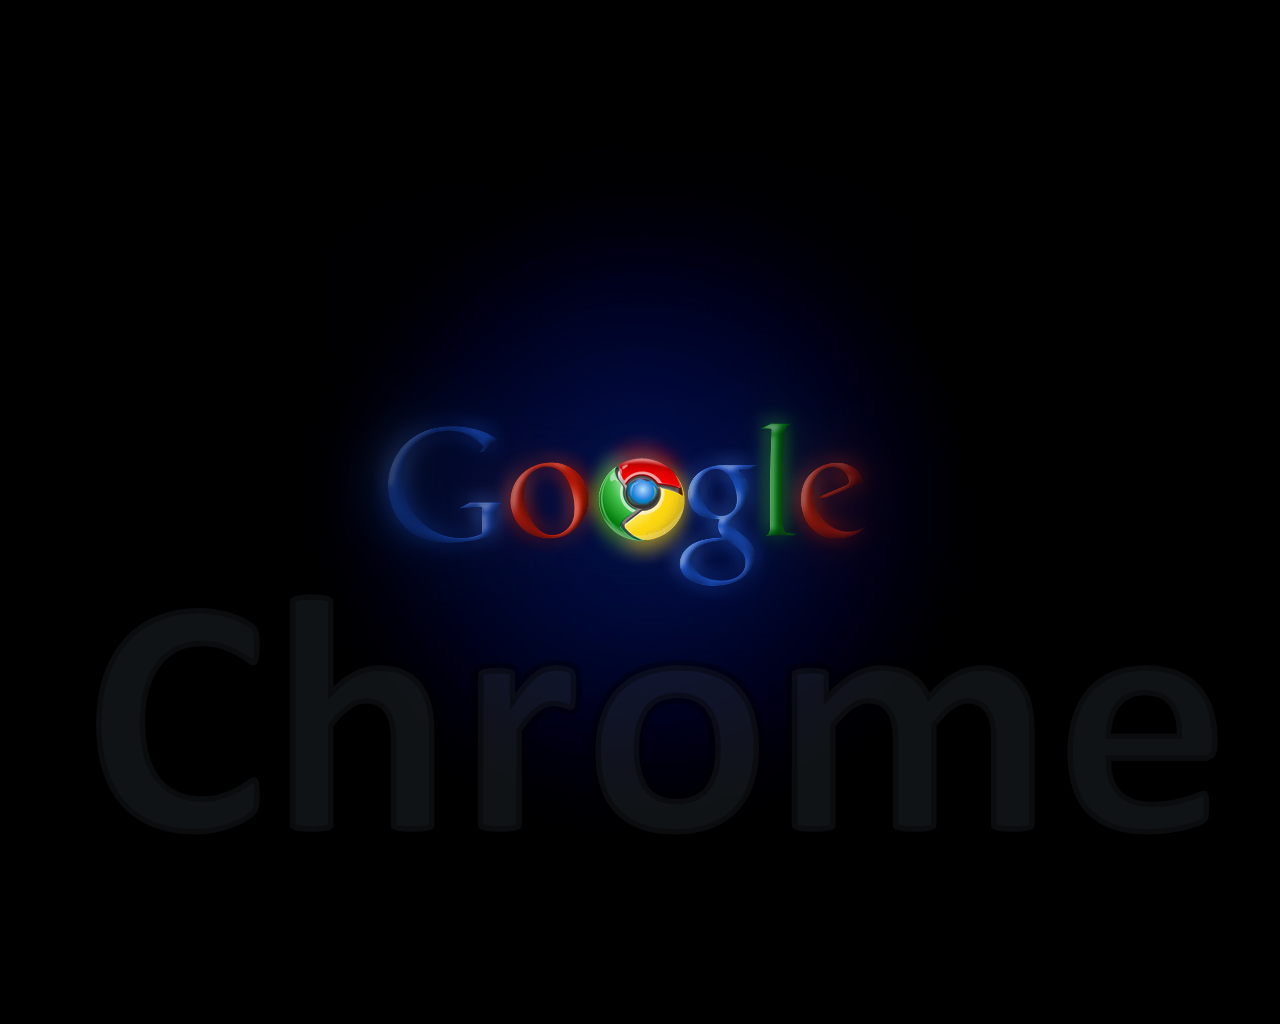 Free Download Top Google Chrome Wallpapers 1280x1024 For